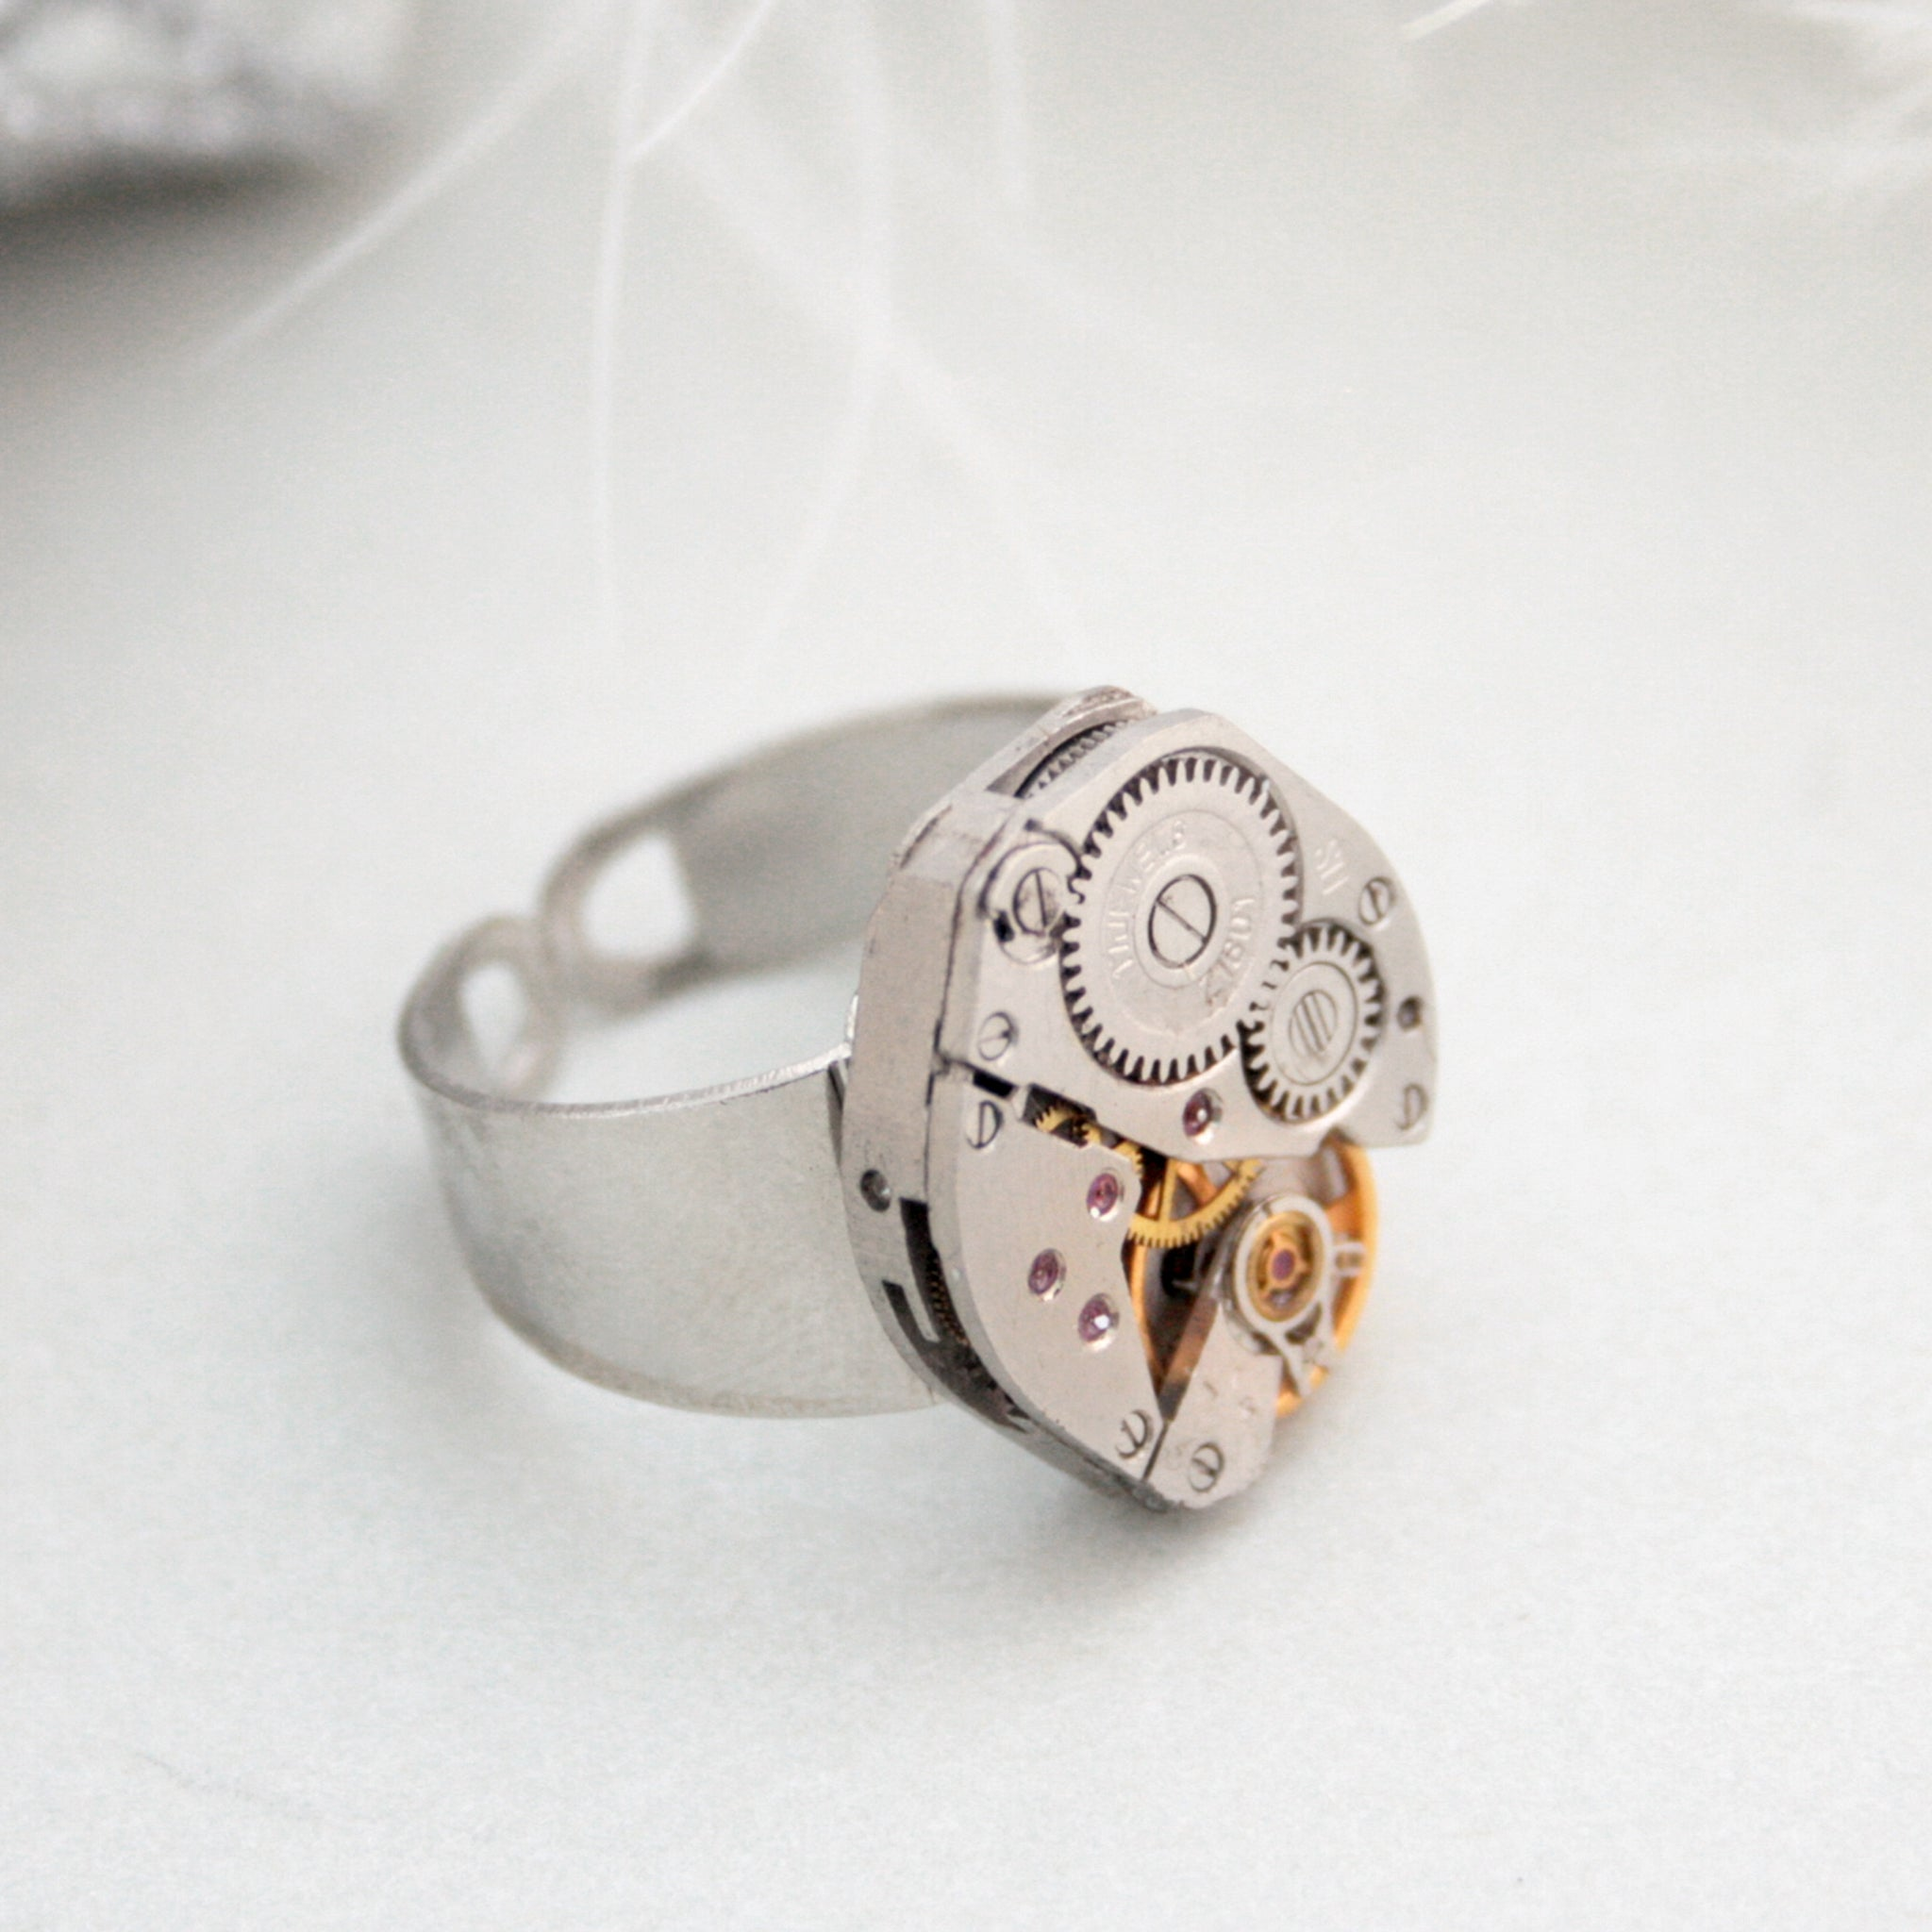 steampunk signet ring has been made using vintage Russian watch movement